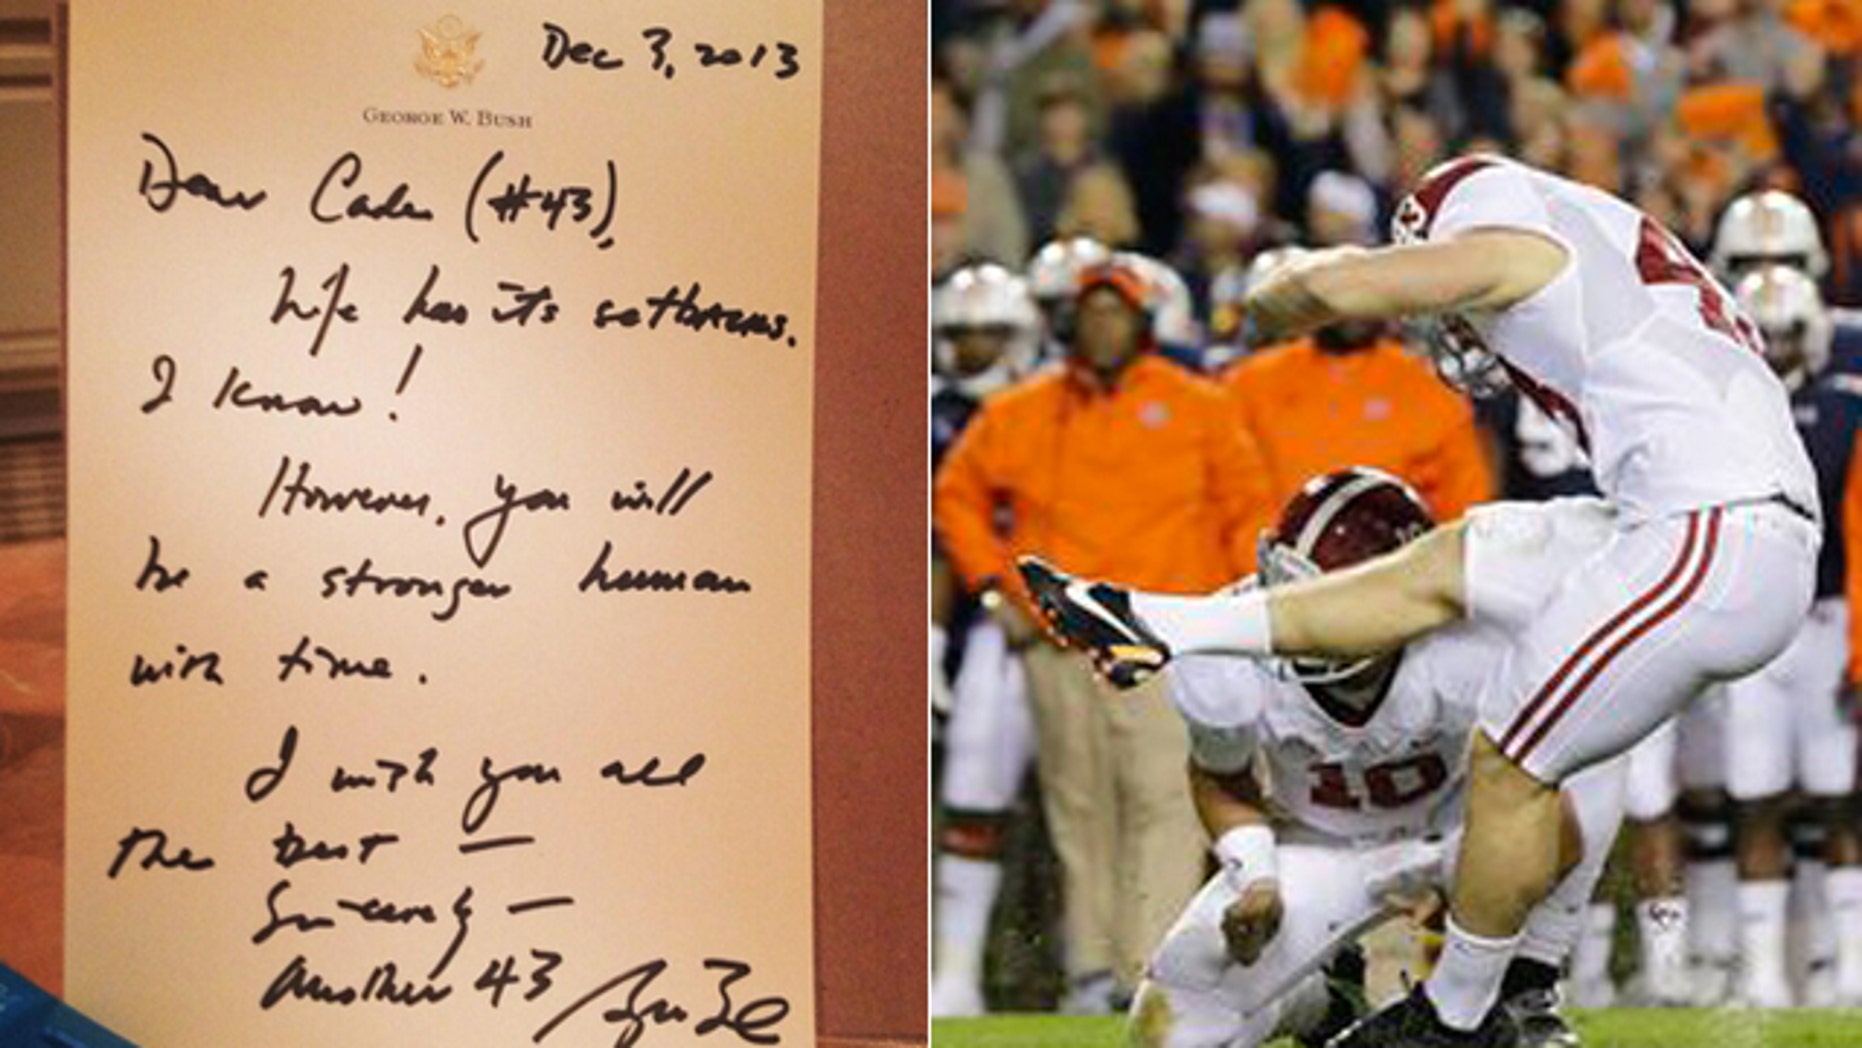 Cade Foster, left, posted this photo to his Twitter account of a letter apparently set to him from George W. Bush.